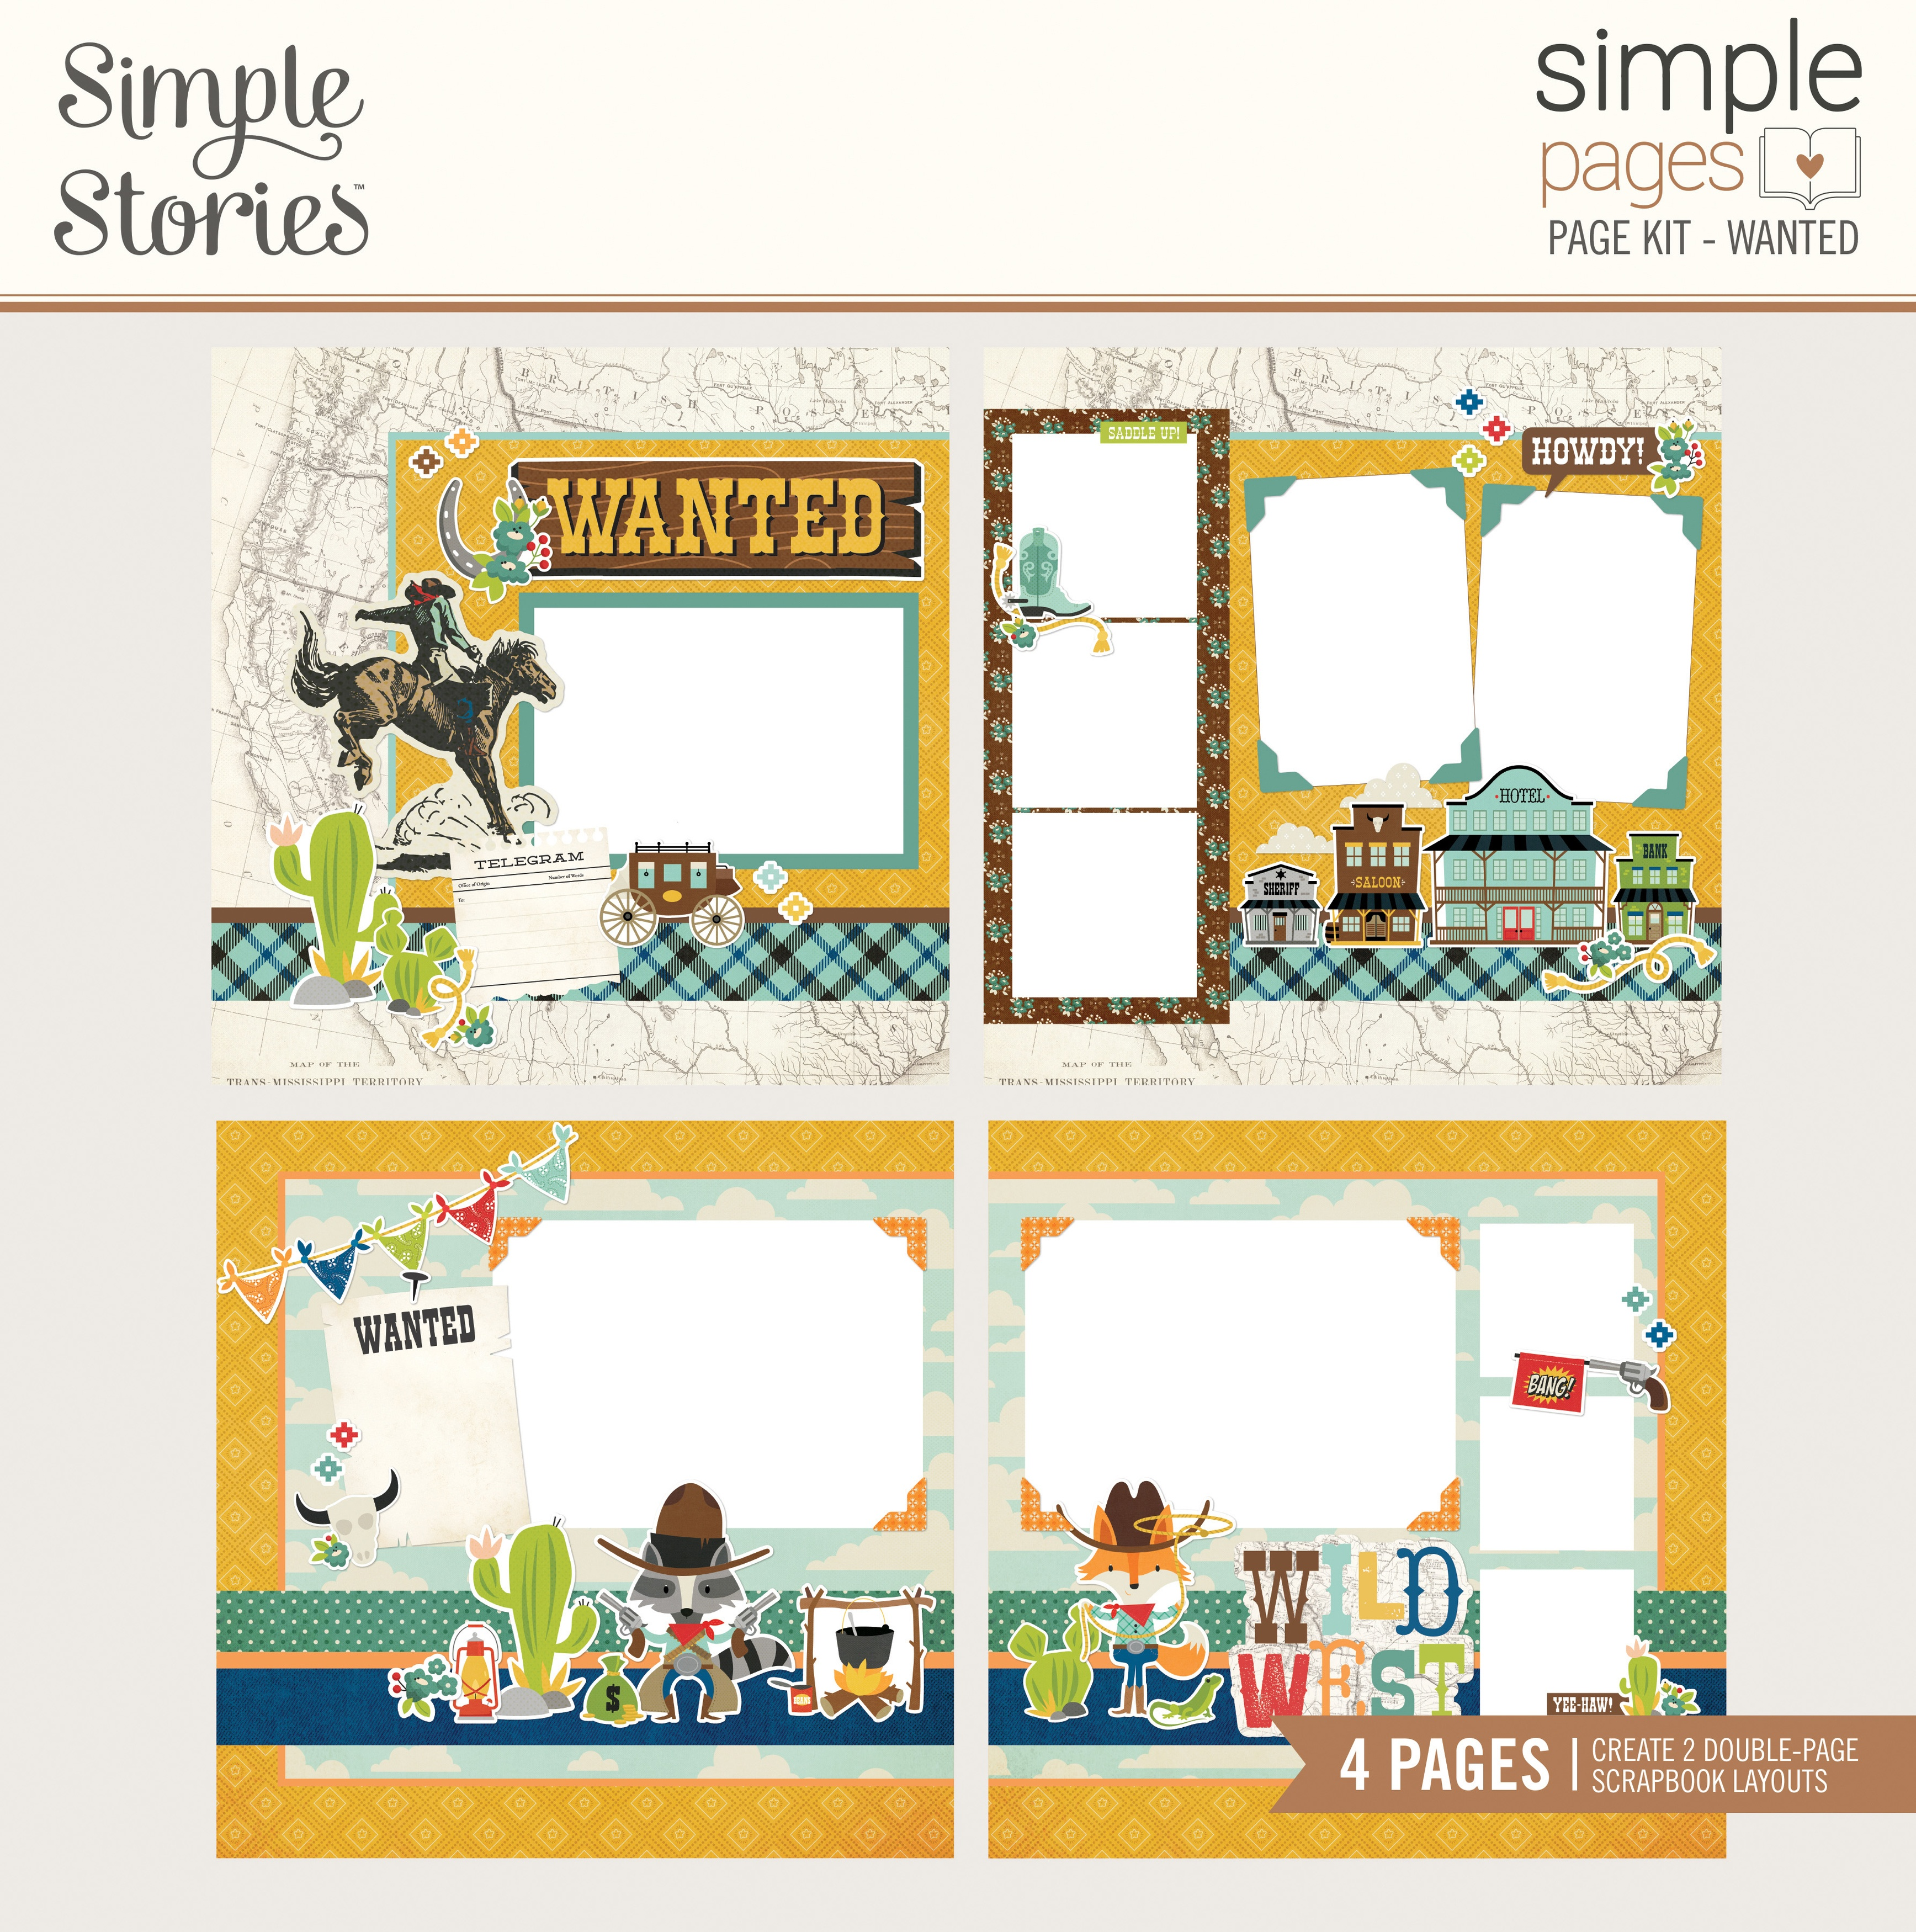 Simple Stories Simple Pages Page Kit-Wanted, Howdy!